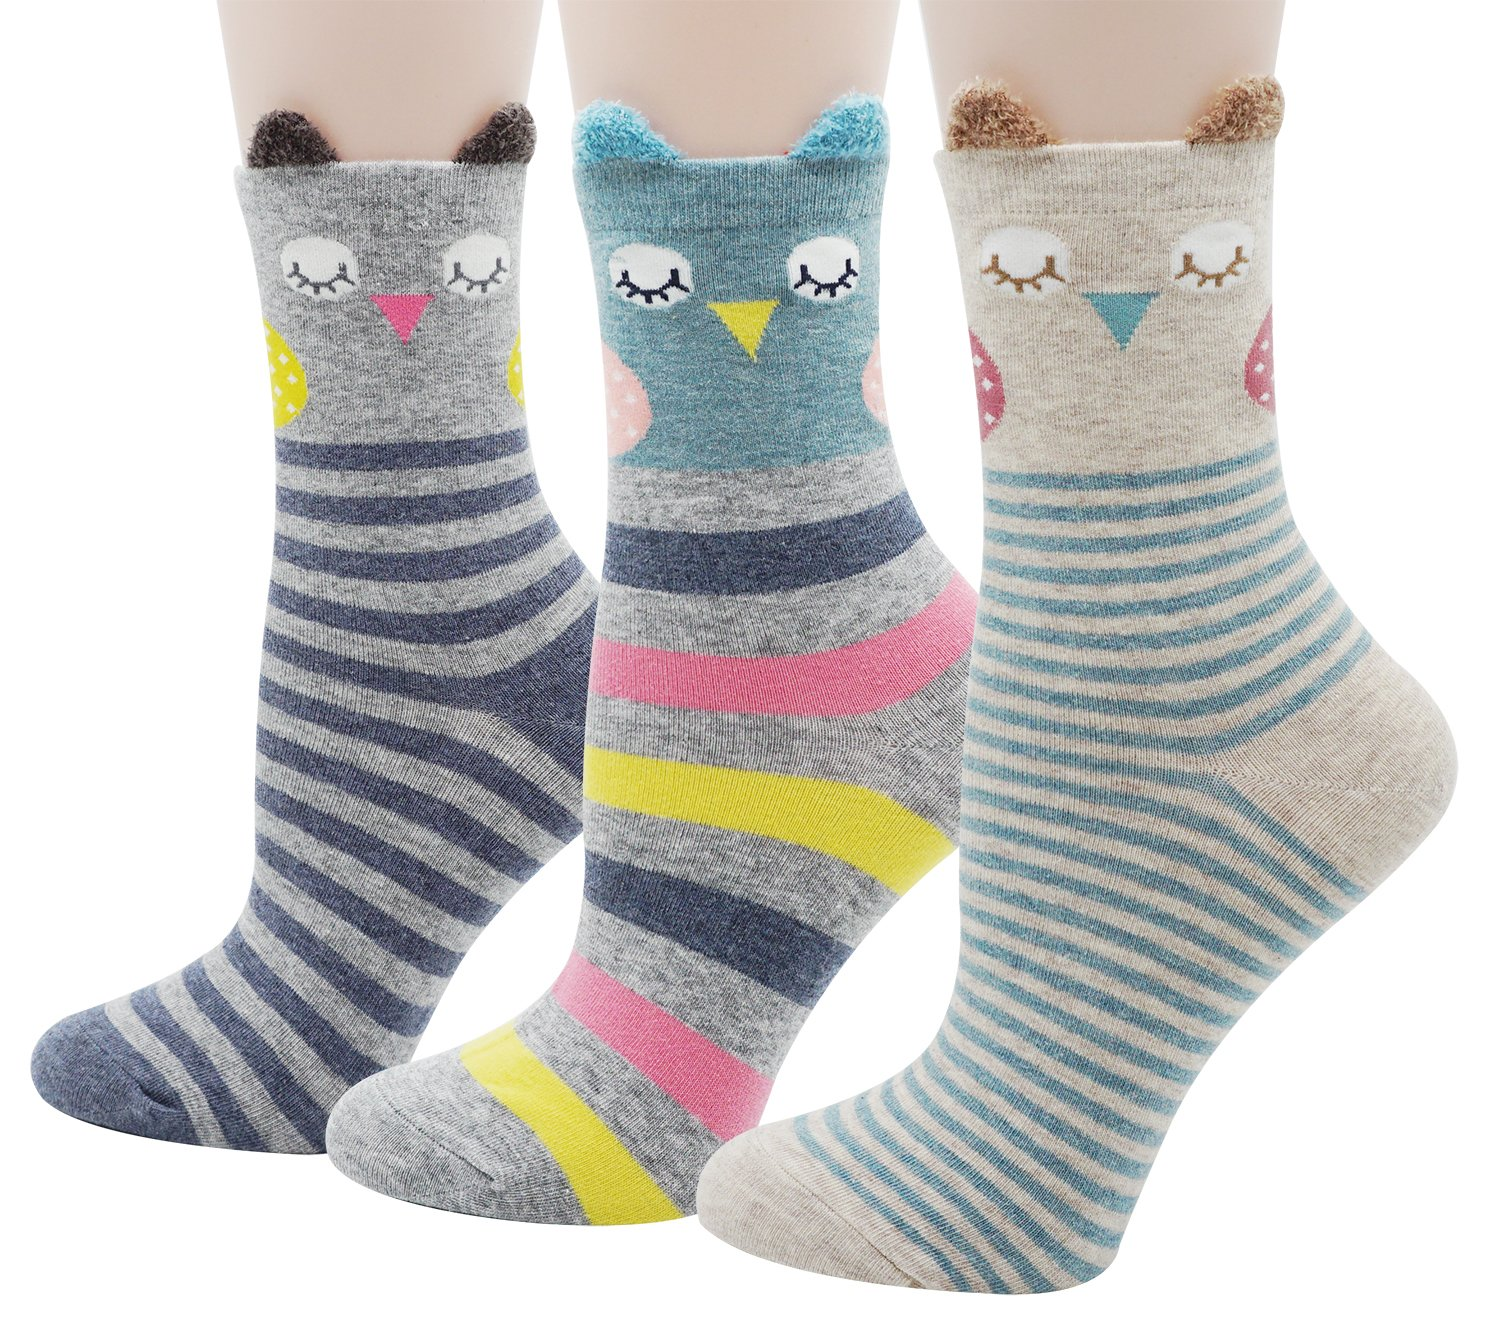 Bienvenu Cute Owl Socks 3 Pack Cotton Socks Multi Color_style 2 One Size